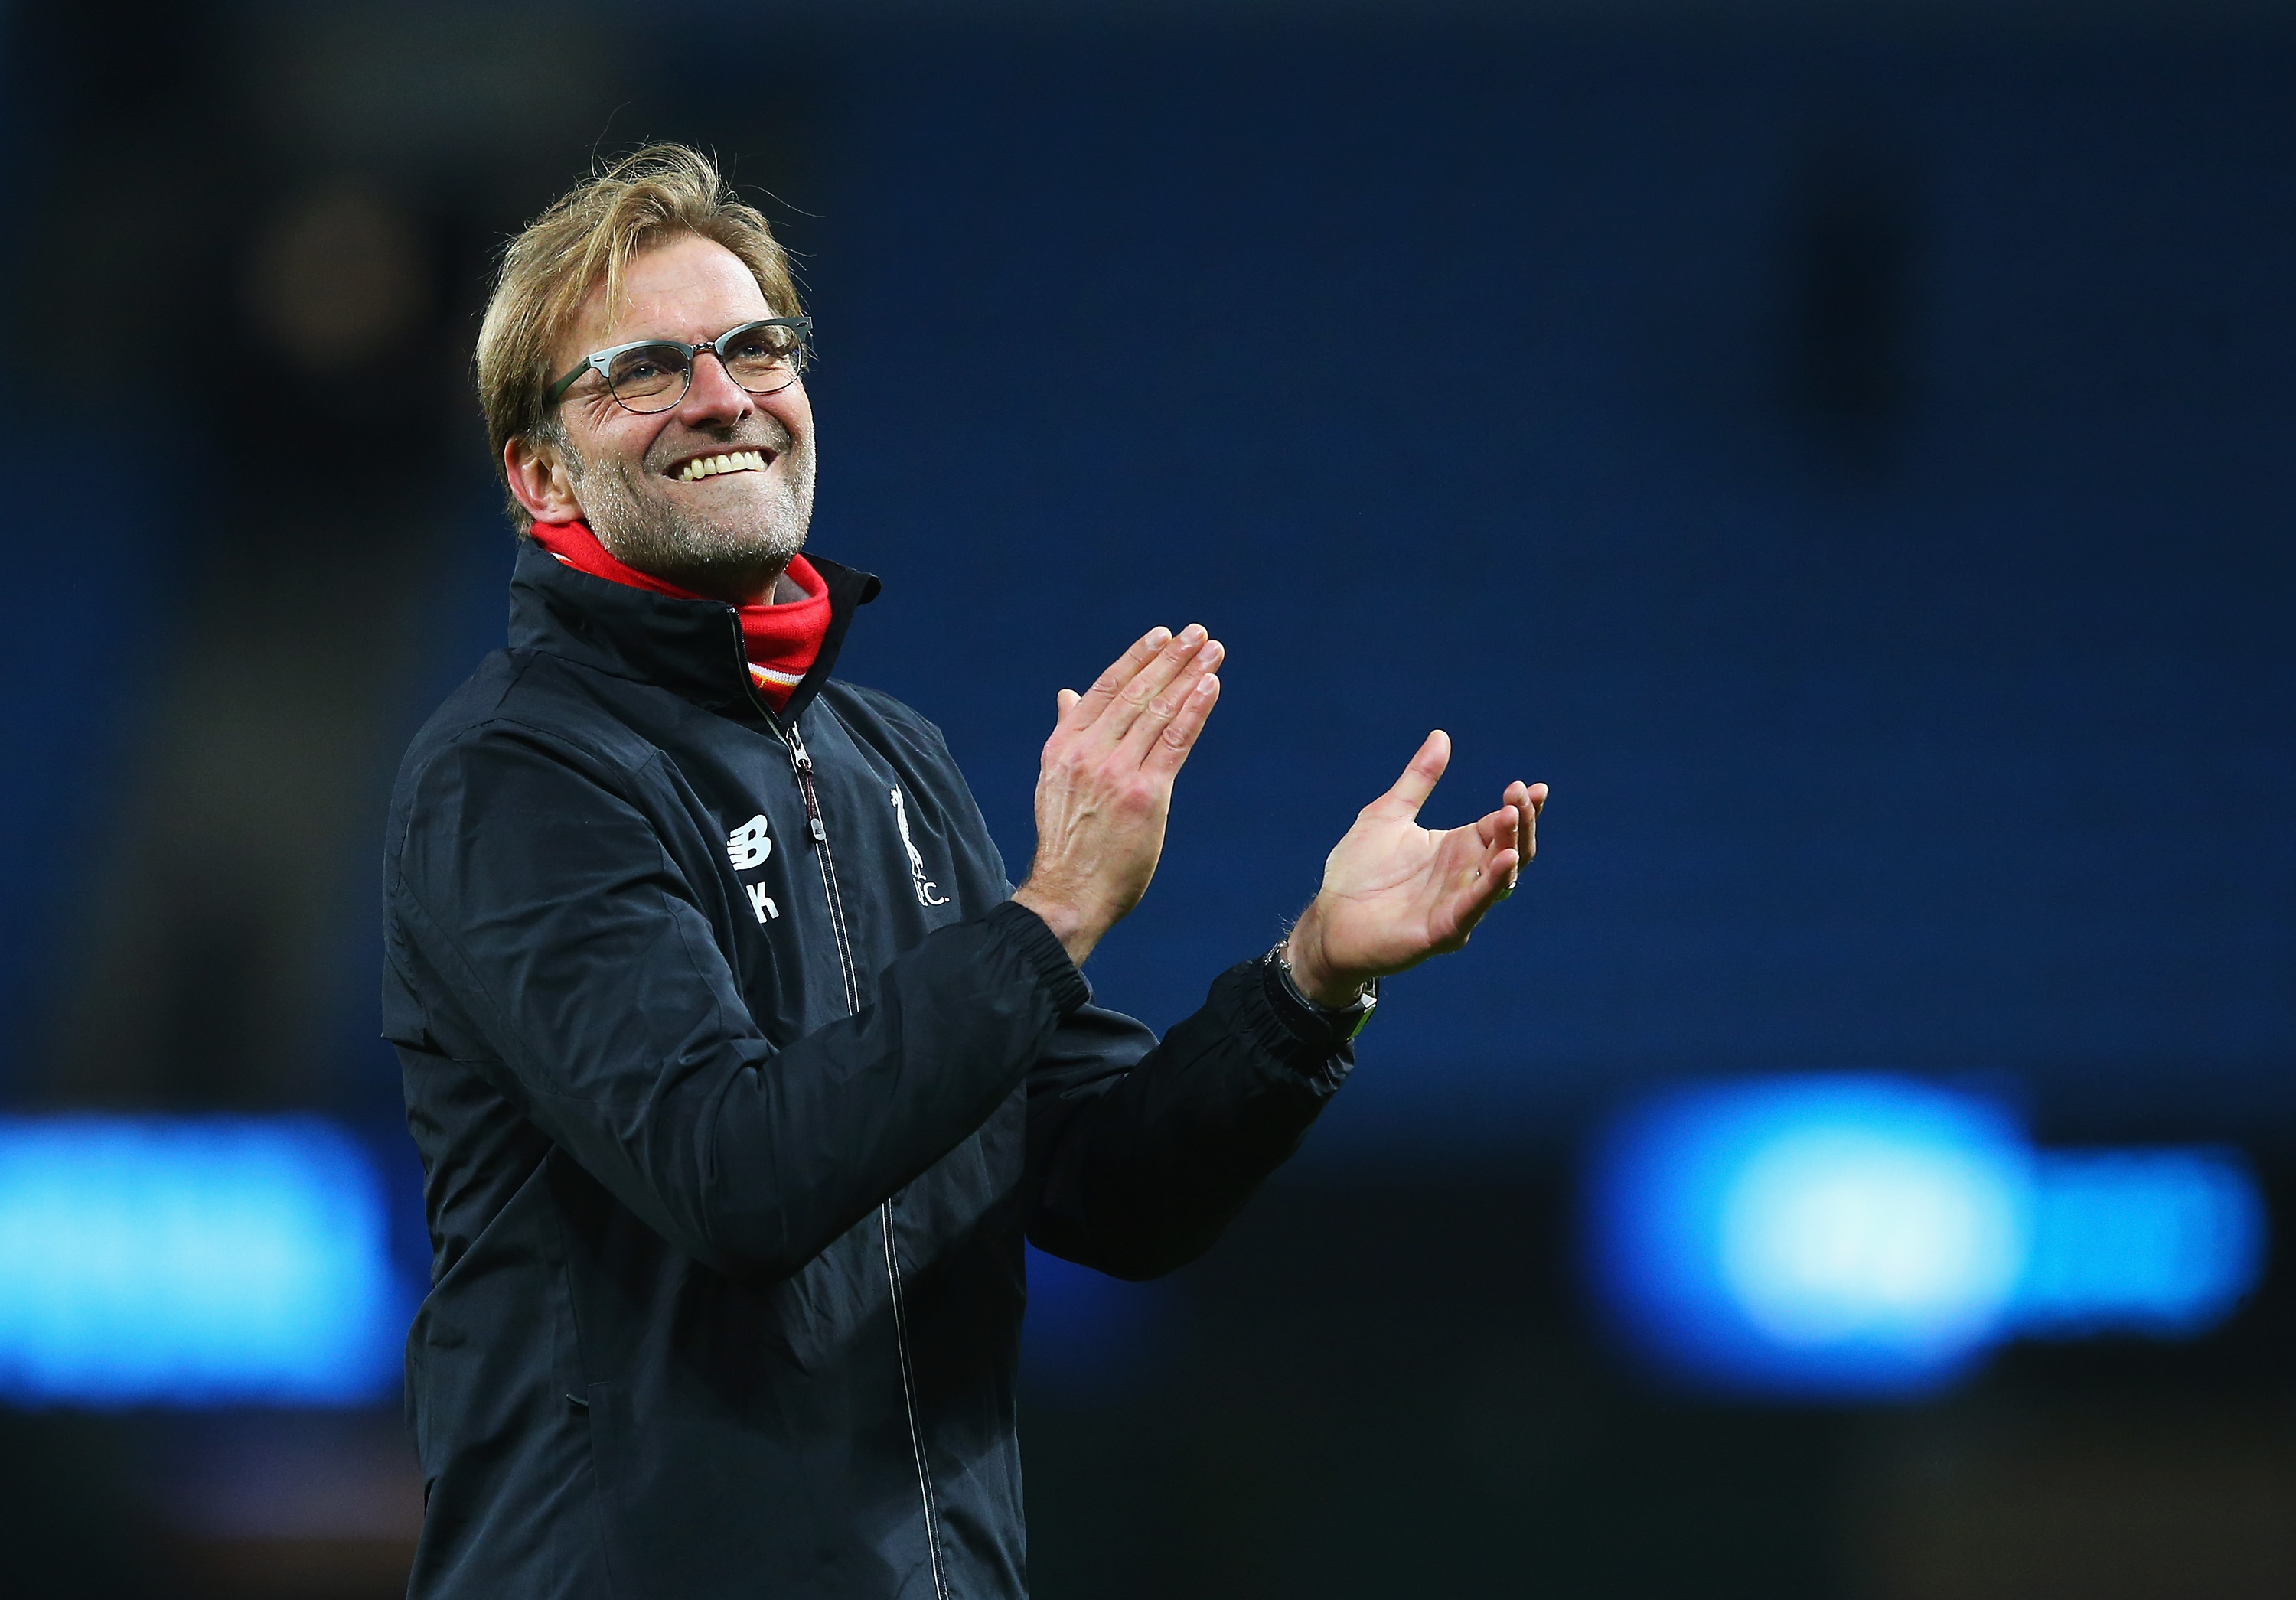 MANCHESTER, ENGLAND - NOVEMBER 21: Jurgen Klopp, manager of Liverpool applauds the supporters after his team's 4-1 win in the Barclays Premier League match between Manchester City and Liverpool at Etihad Stadium on November 21, 2015 in Manchester, England. (Photo by Alex Livesey/Getty Images)